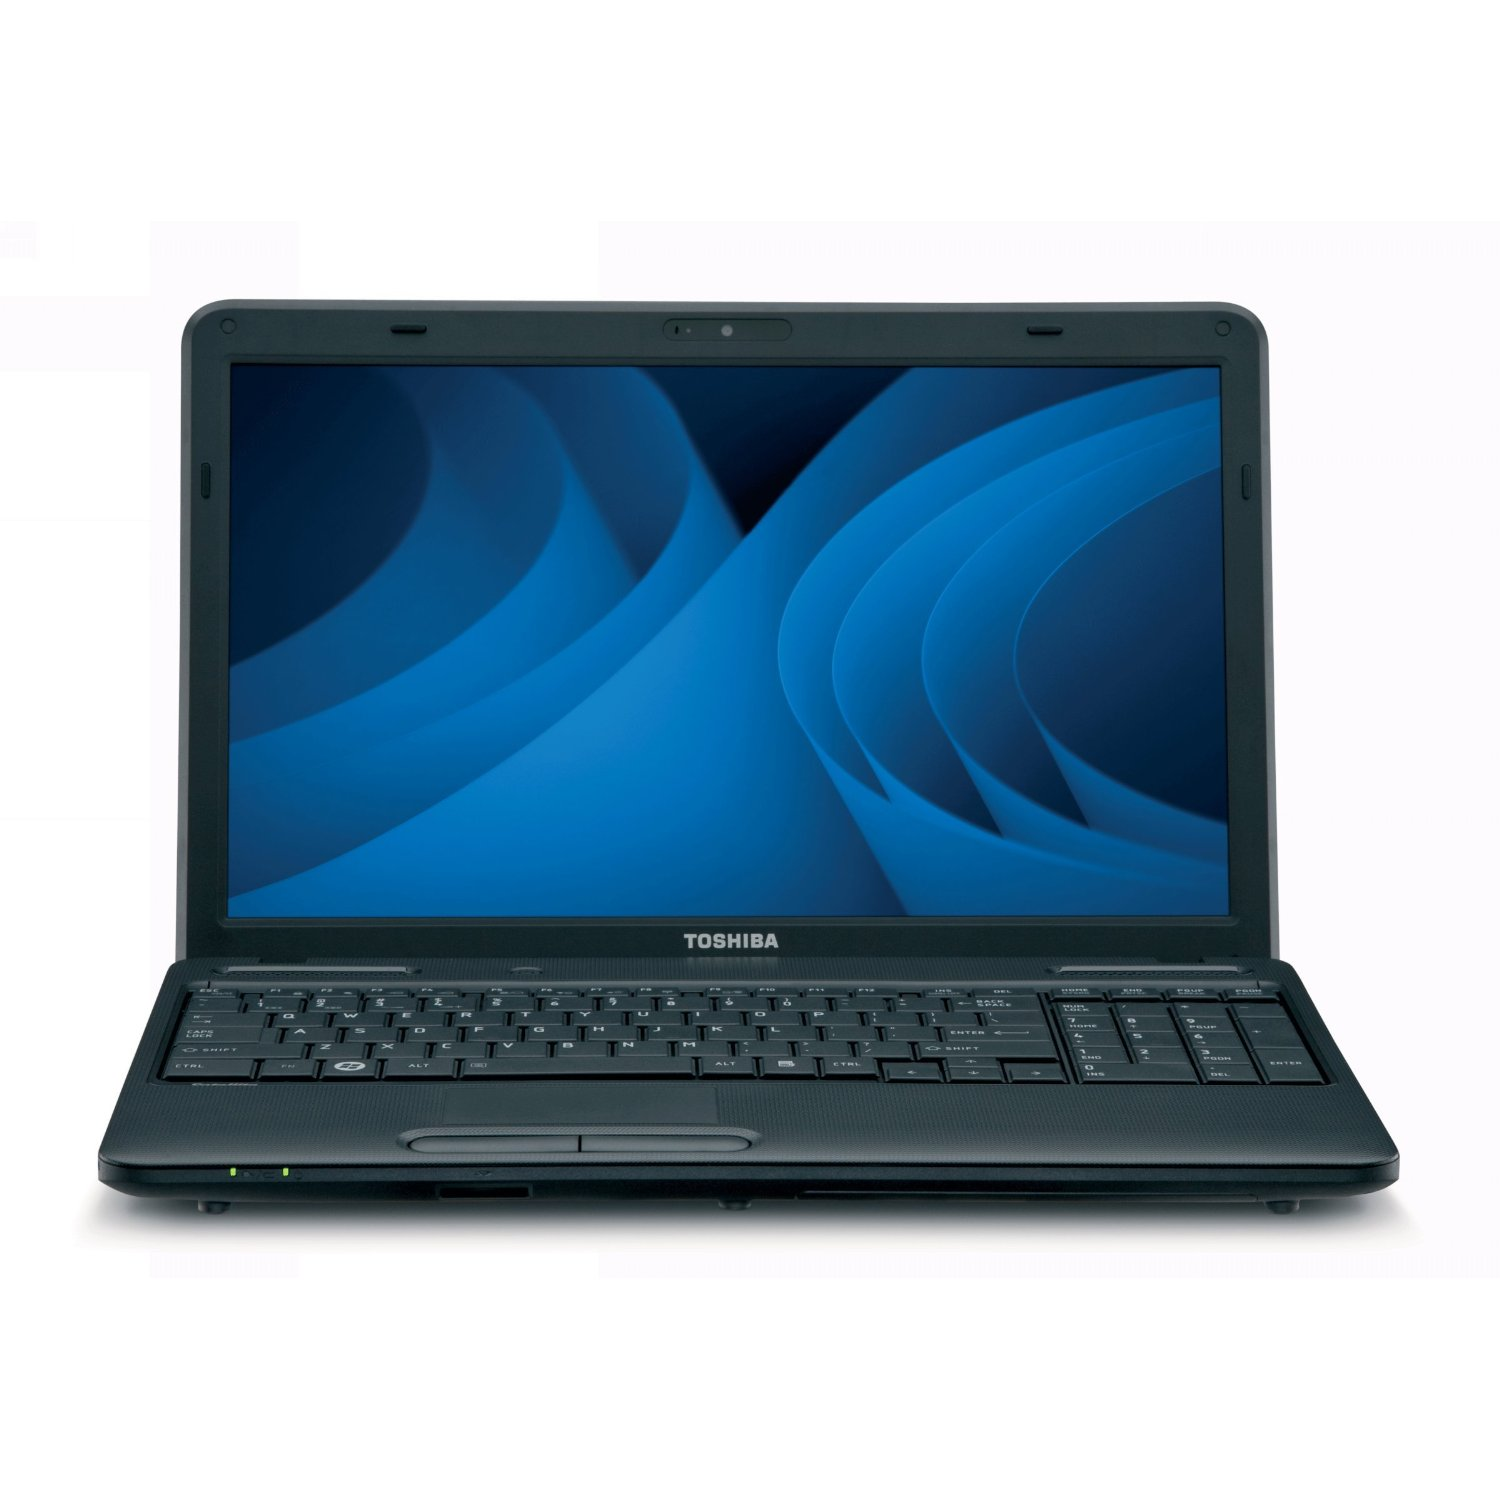 Toshiba Satellite C850-A669 Drivers